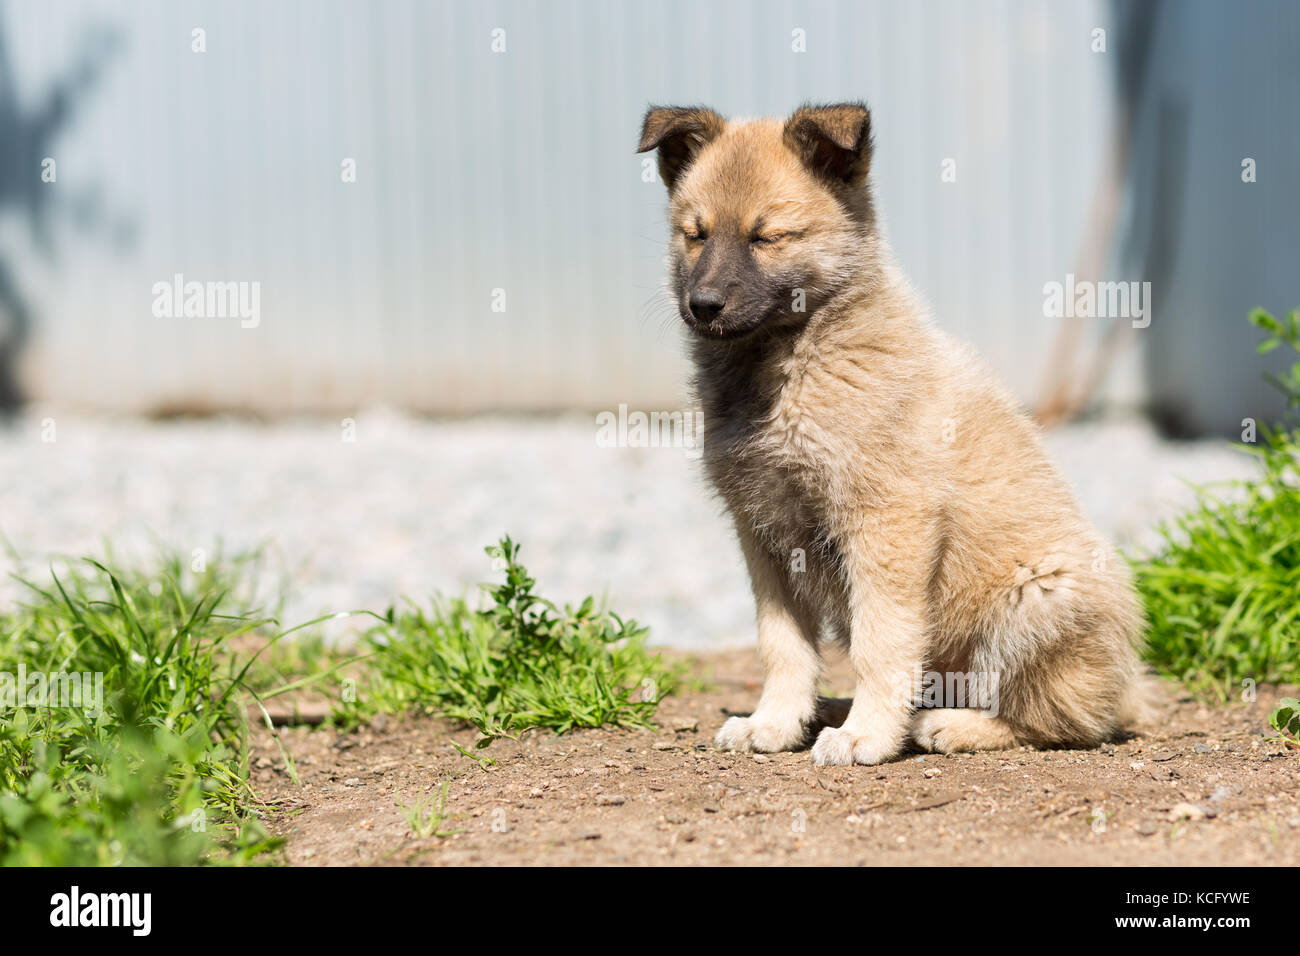 non-pedigree fawn-colored puppy sits on a path - Stock Image